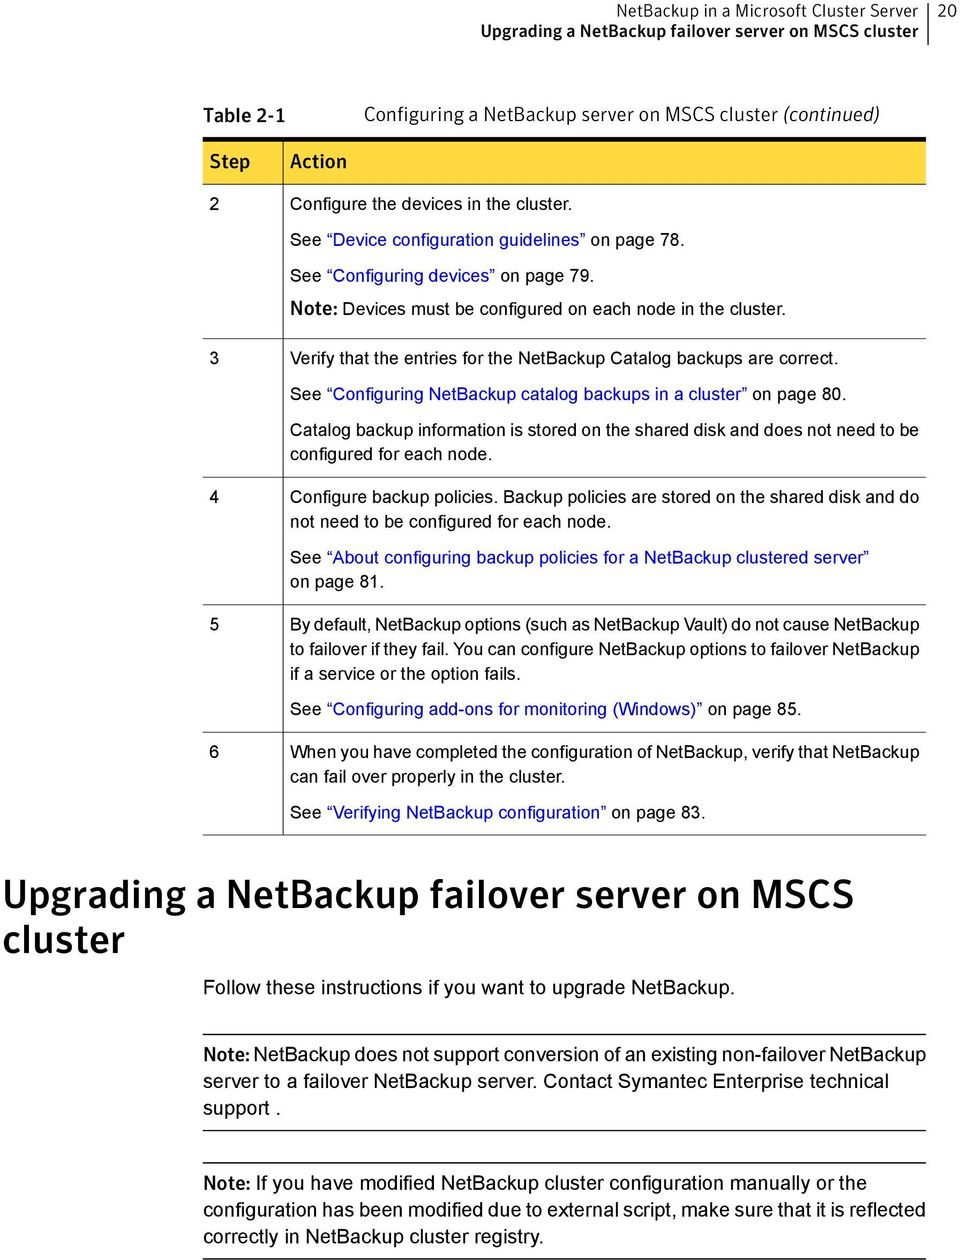 3 Verify that the entries for the NetBackup Catalog backups are correct. See Configuring NetBackup catalog backups in a cluster on page 80.